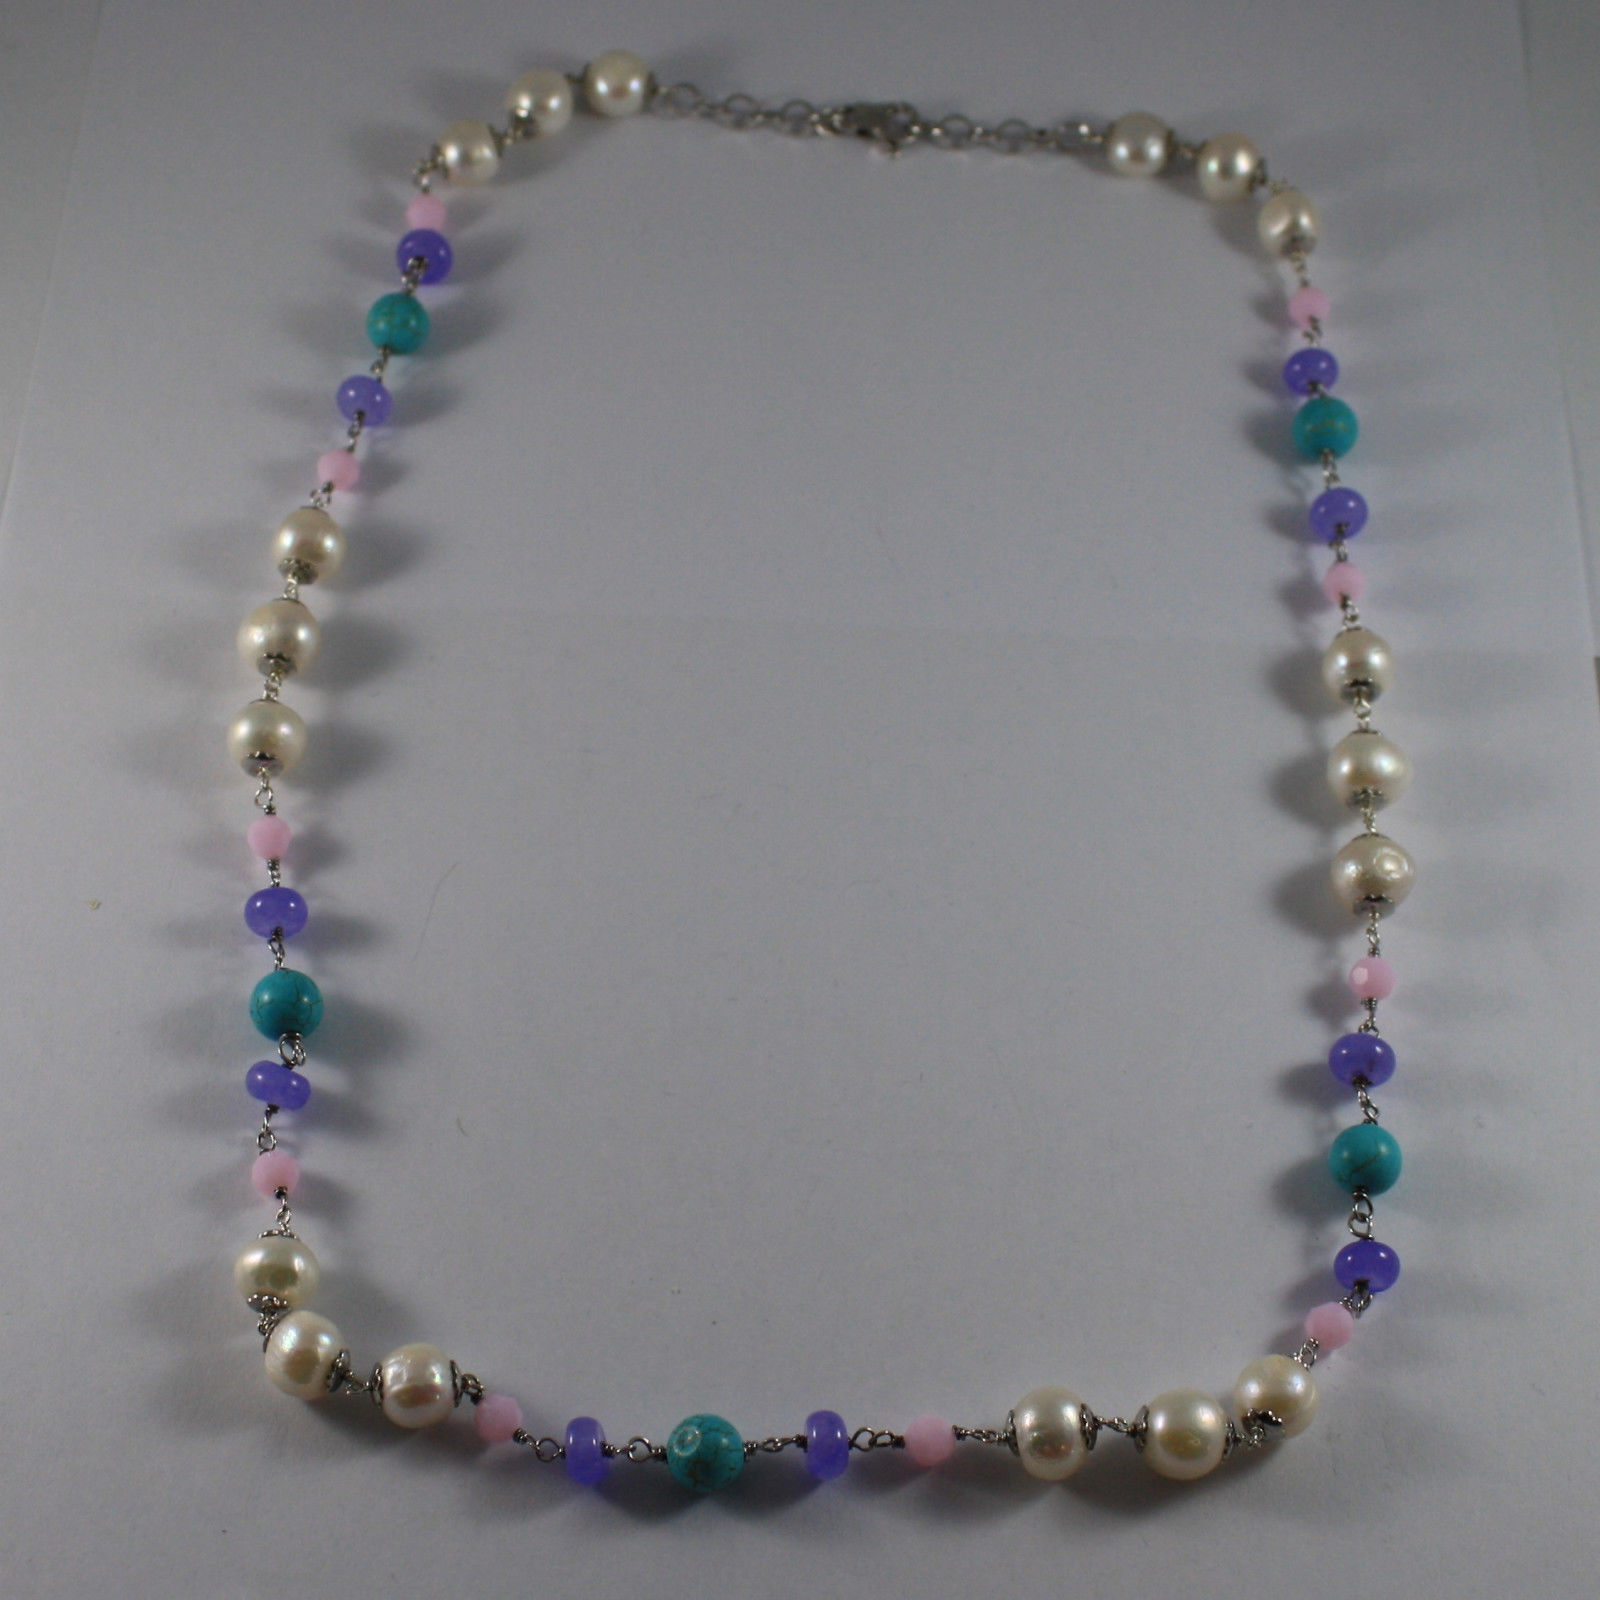 .925 SILVER RHODIUM NECKLACE WITH WHITE PEARLS, TURQUOISE, AMETHYST AND CRISTALS